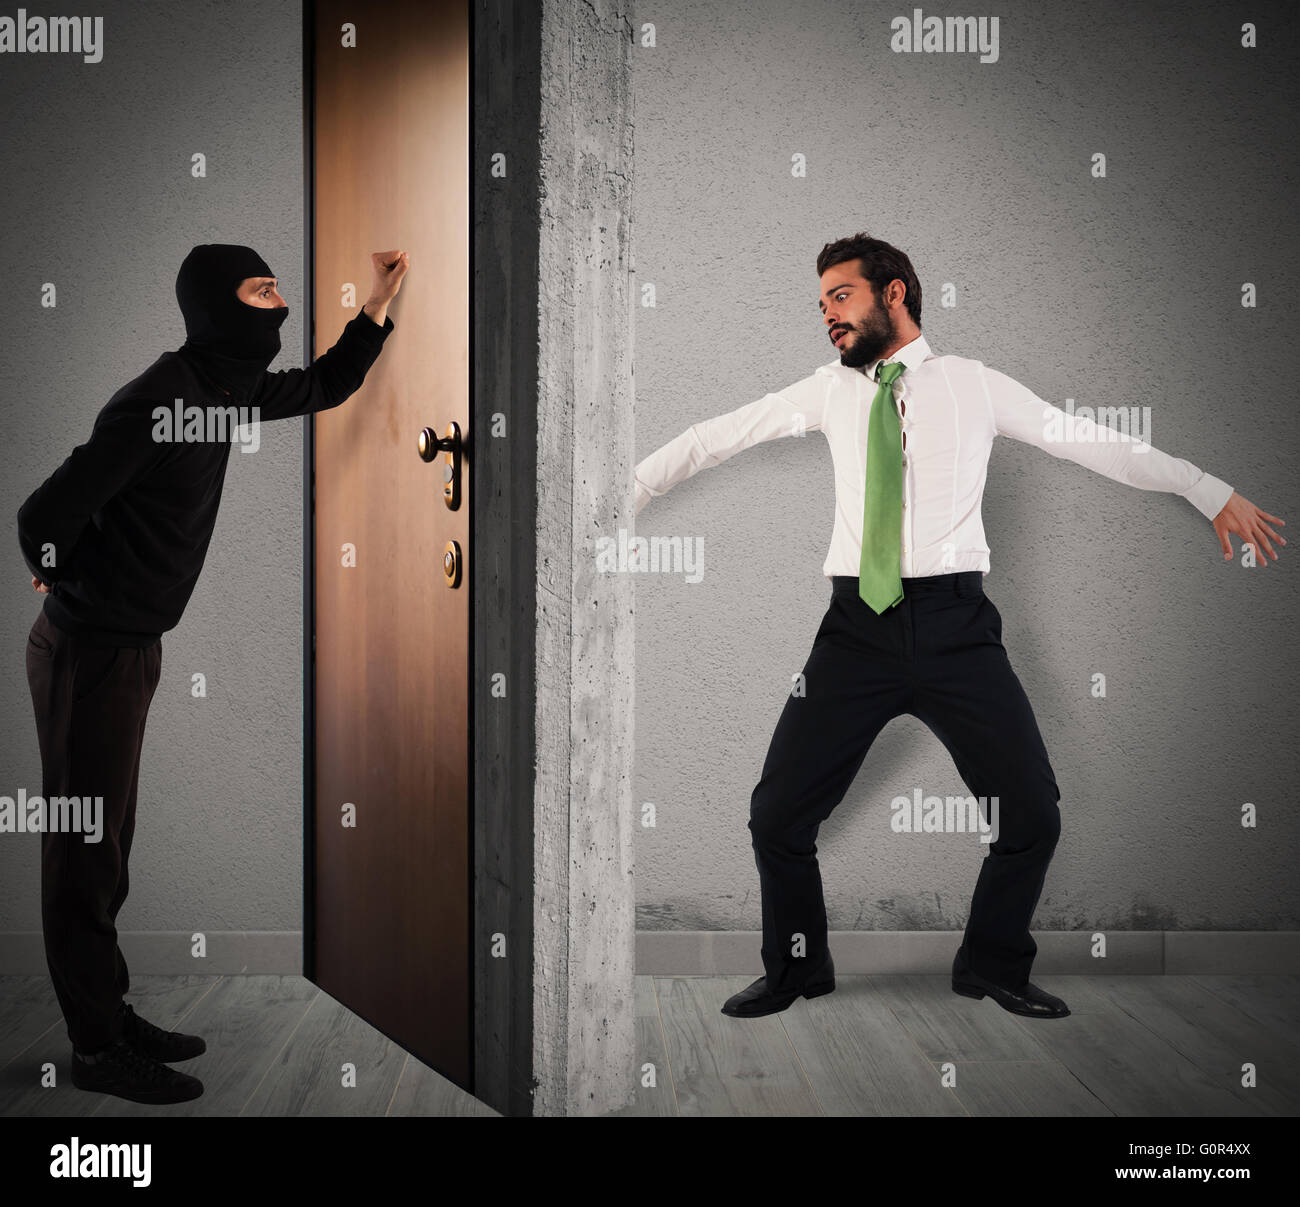 Polite thief - Stock Image